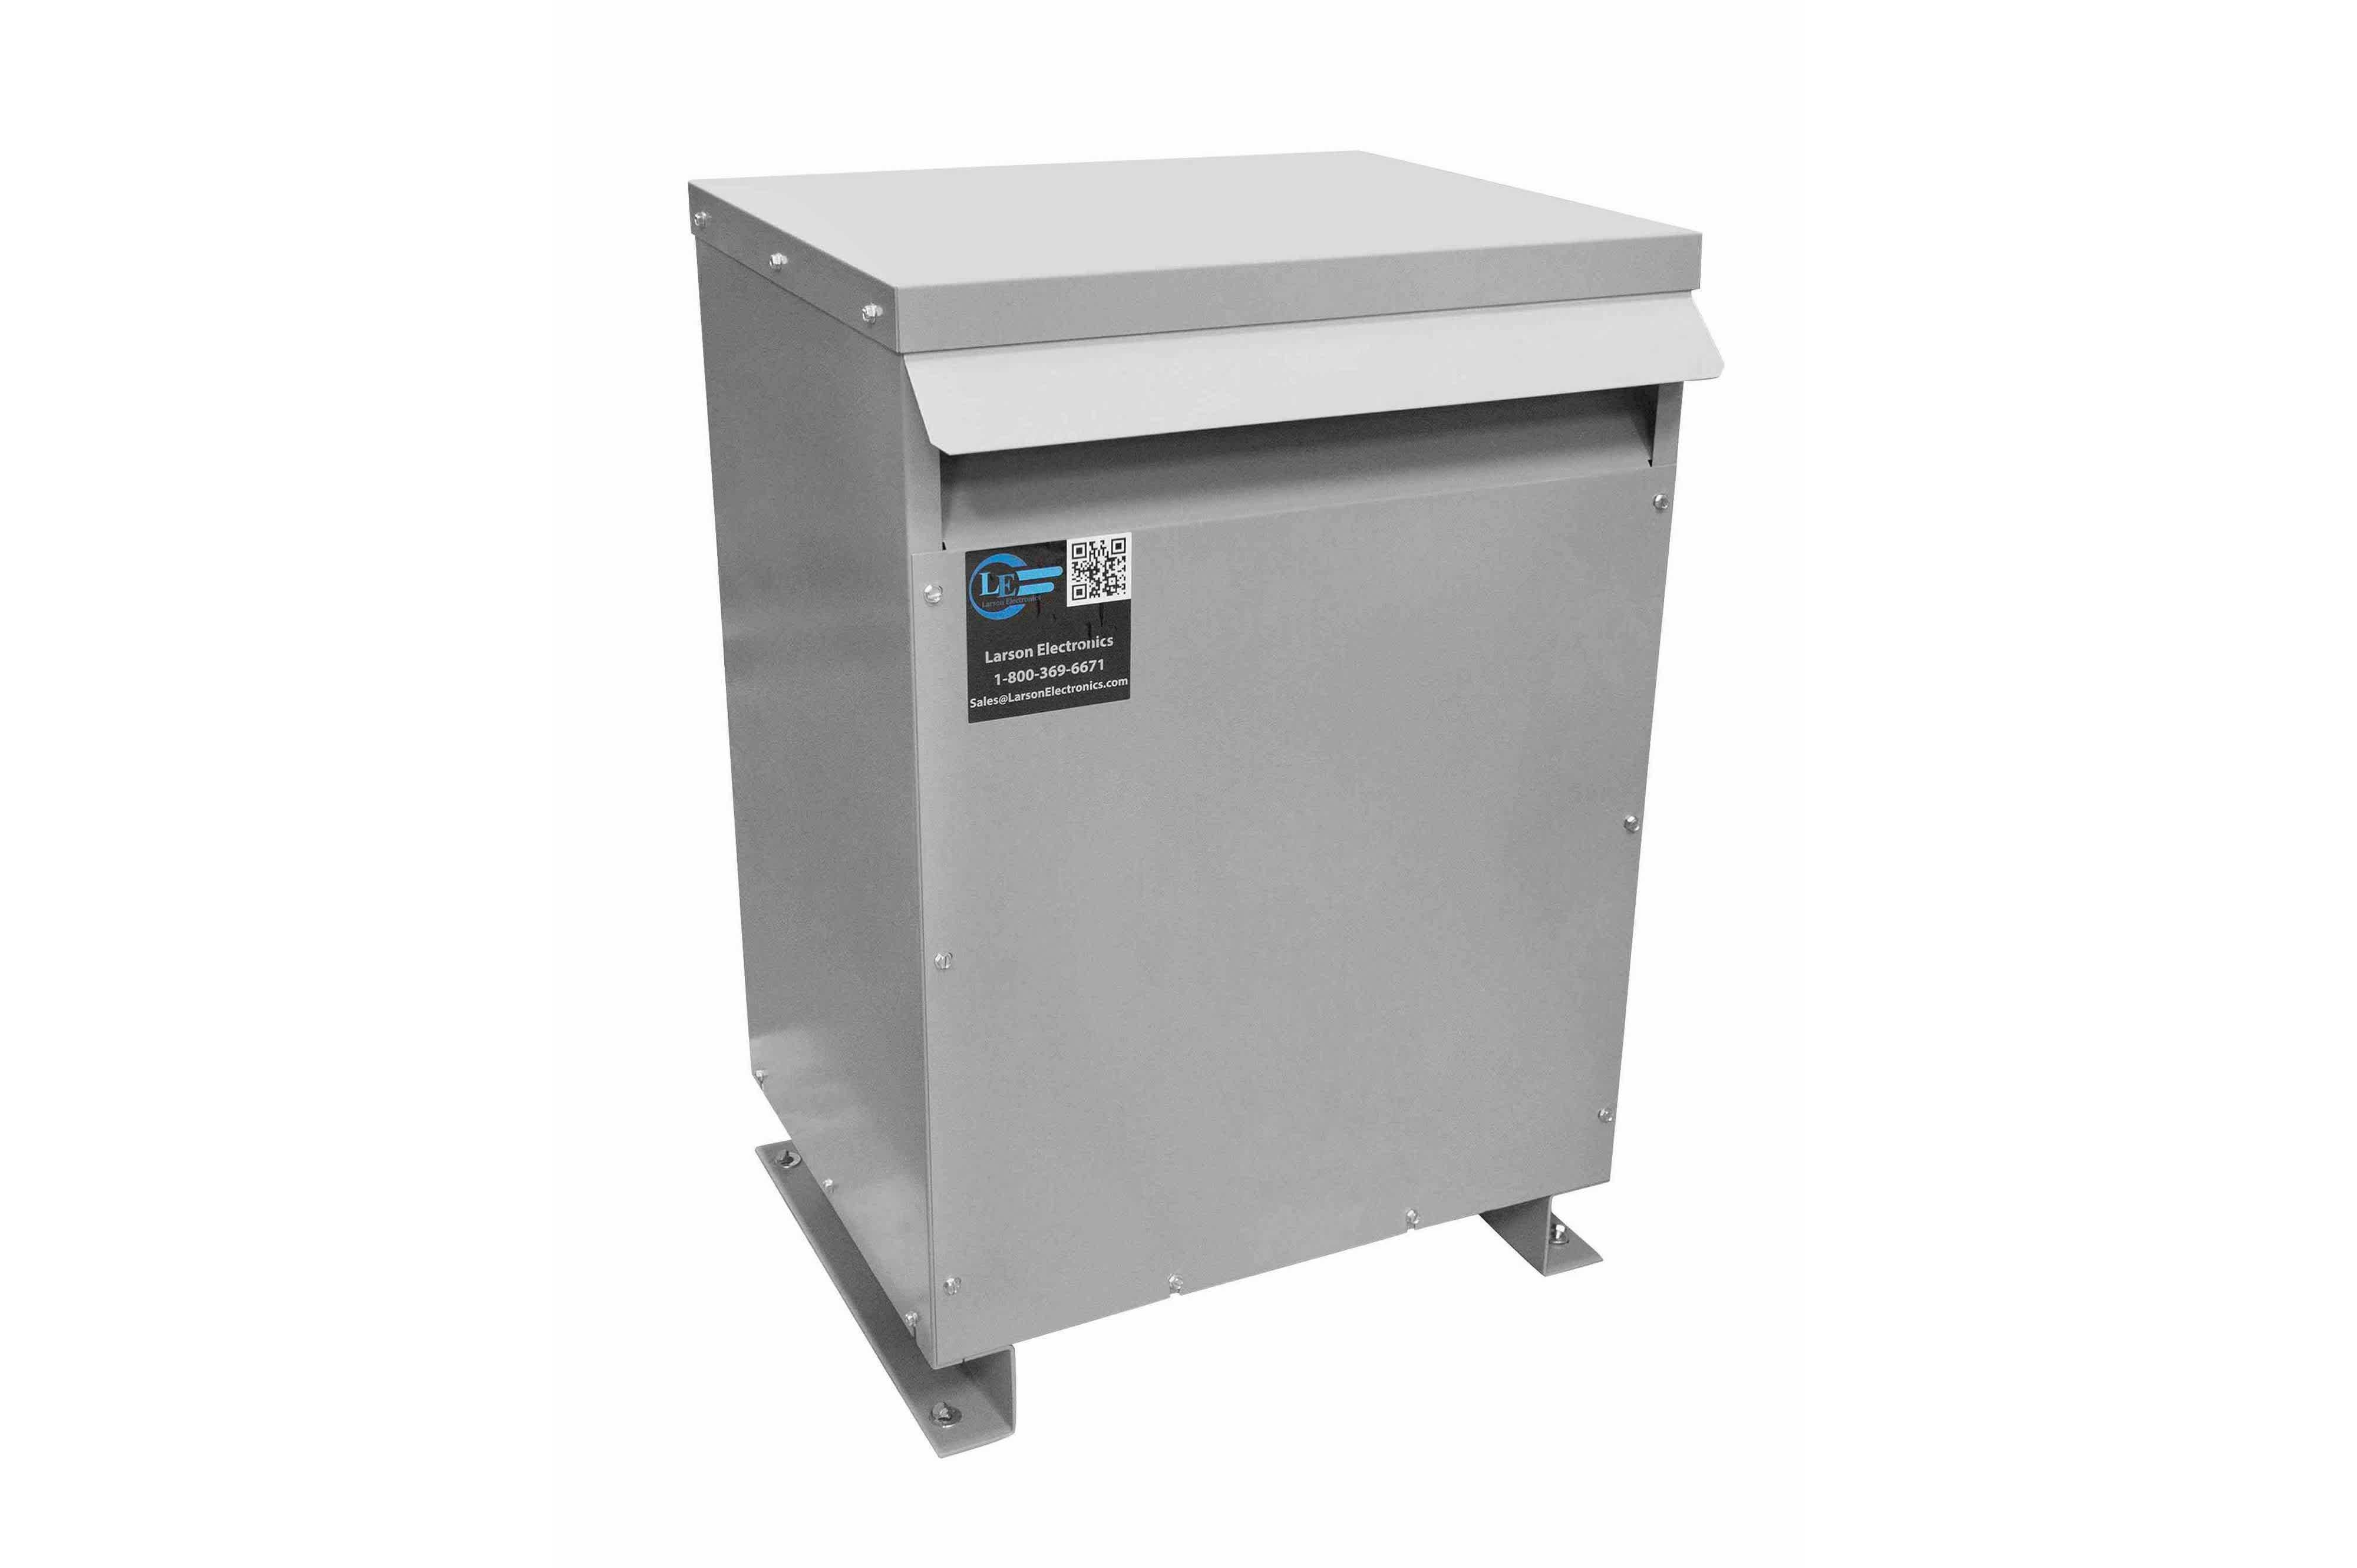 250 kVA 3PH Isolation Transformer, 600V Wye Primary, 460V Delta Secondary, N3R, Ventilated, 60 Hz